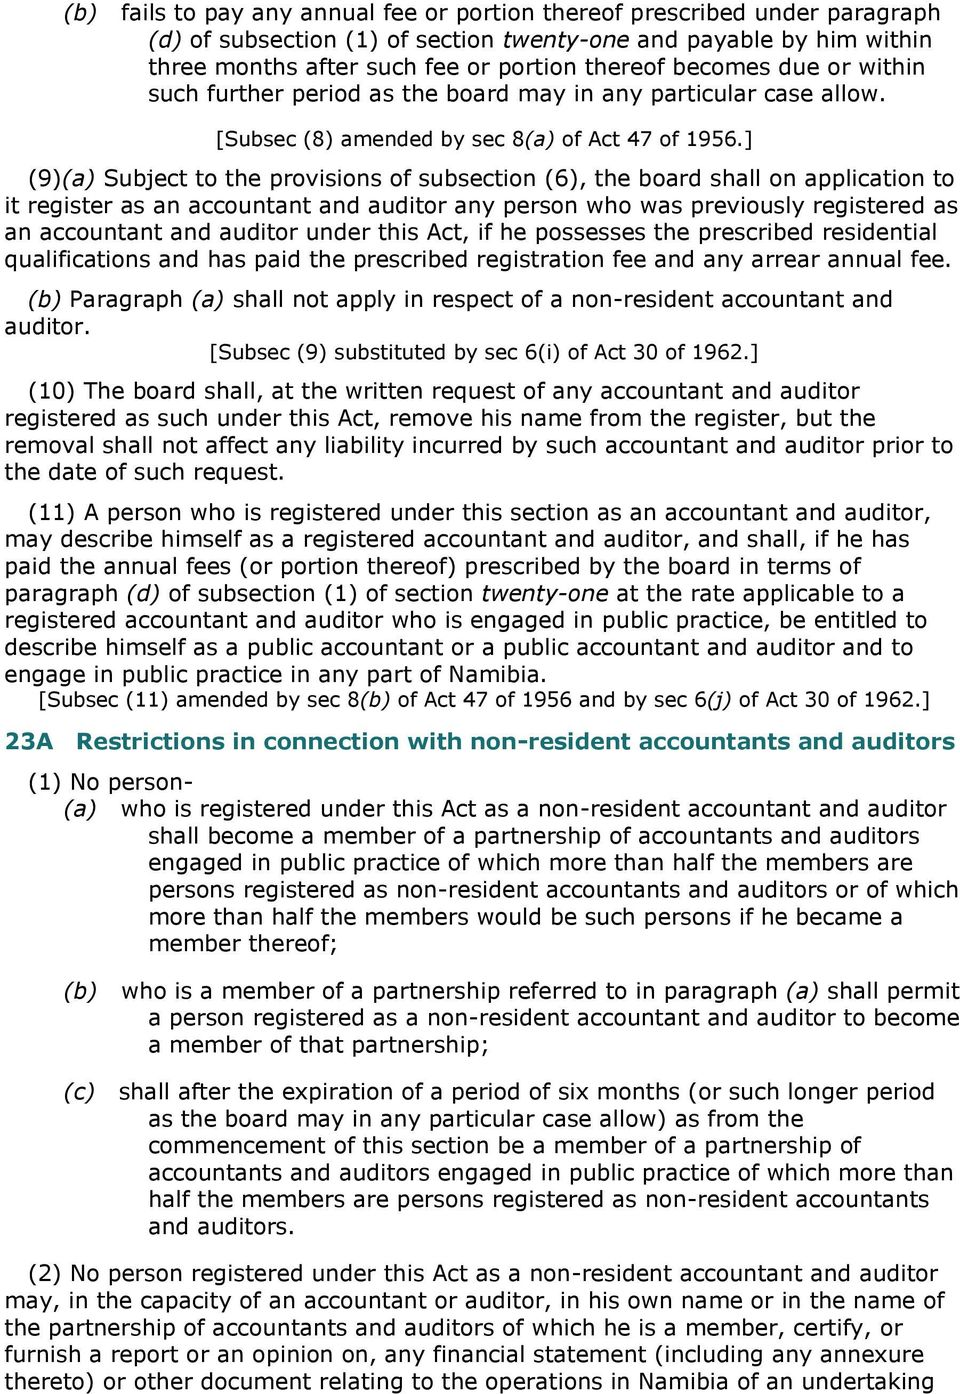 ] (9)(a) Subject to the provisions of subsection (6), the board shall on application to it register as an accountant and auditor any person who was previously registered as an accountant and auditor